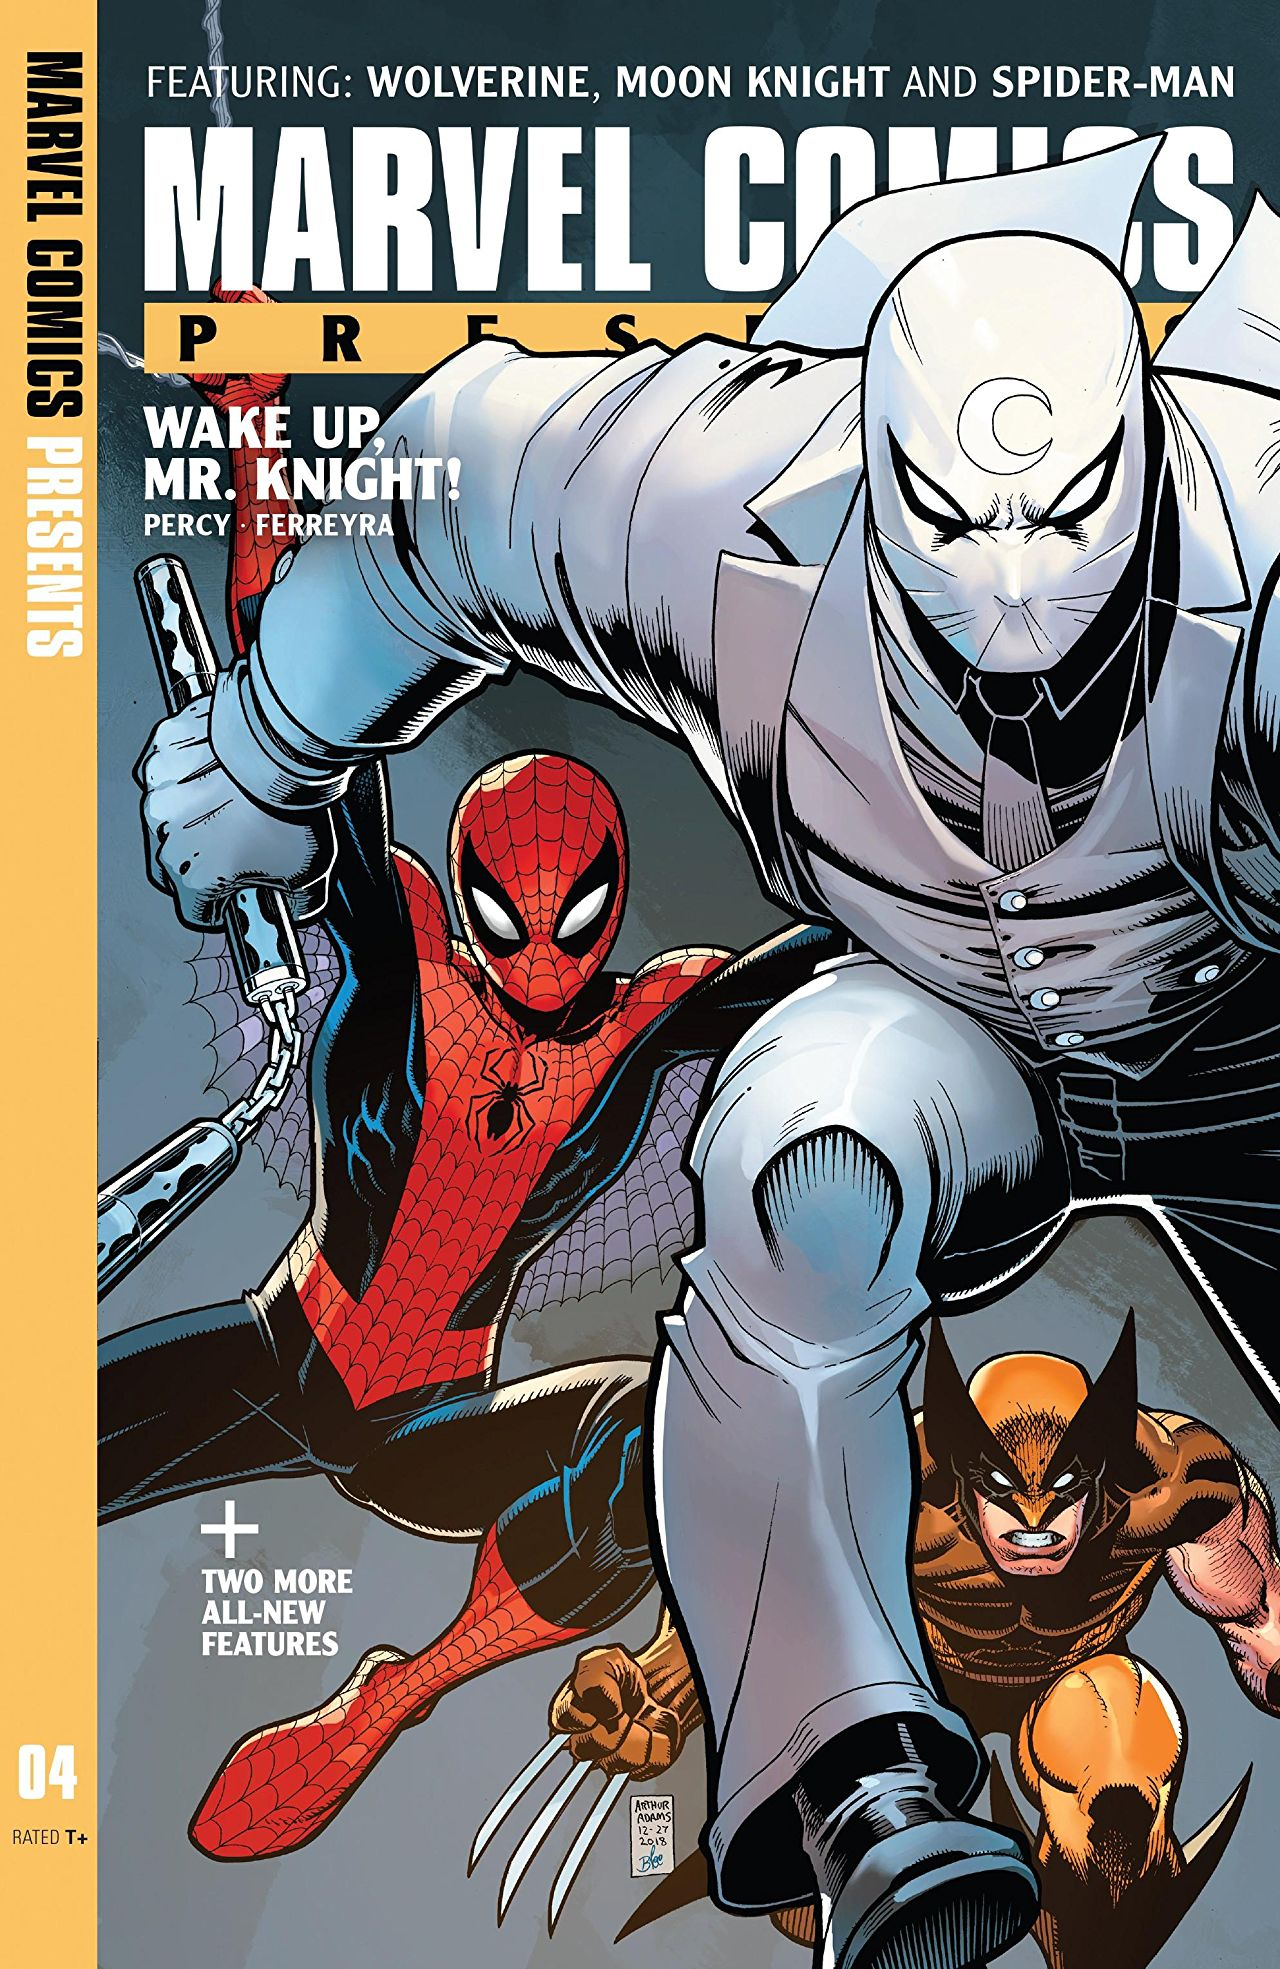 Wolverine, Spider-Man and Moon Knight are featured in the latest Marvel Comics Presents.